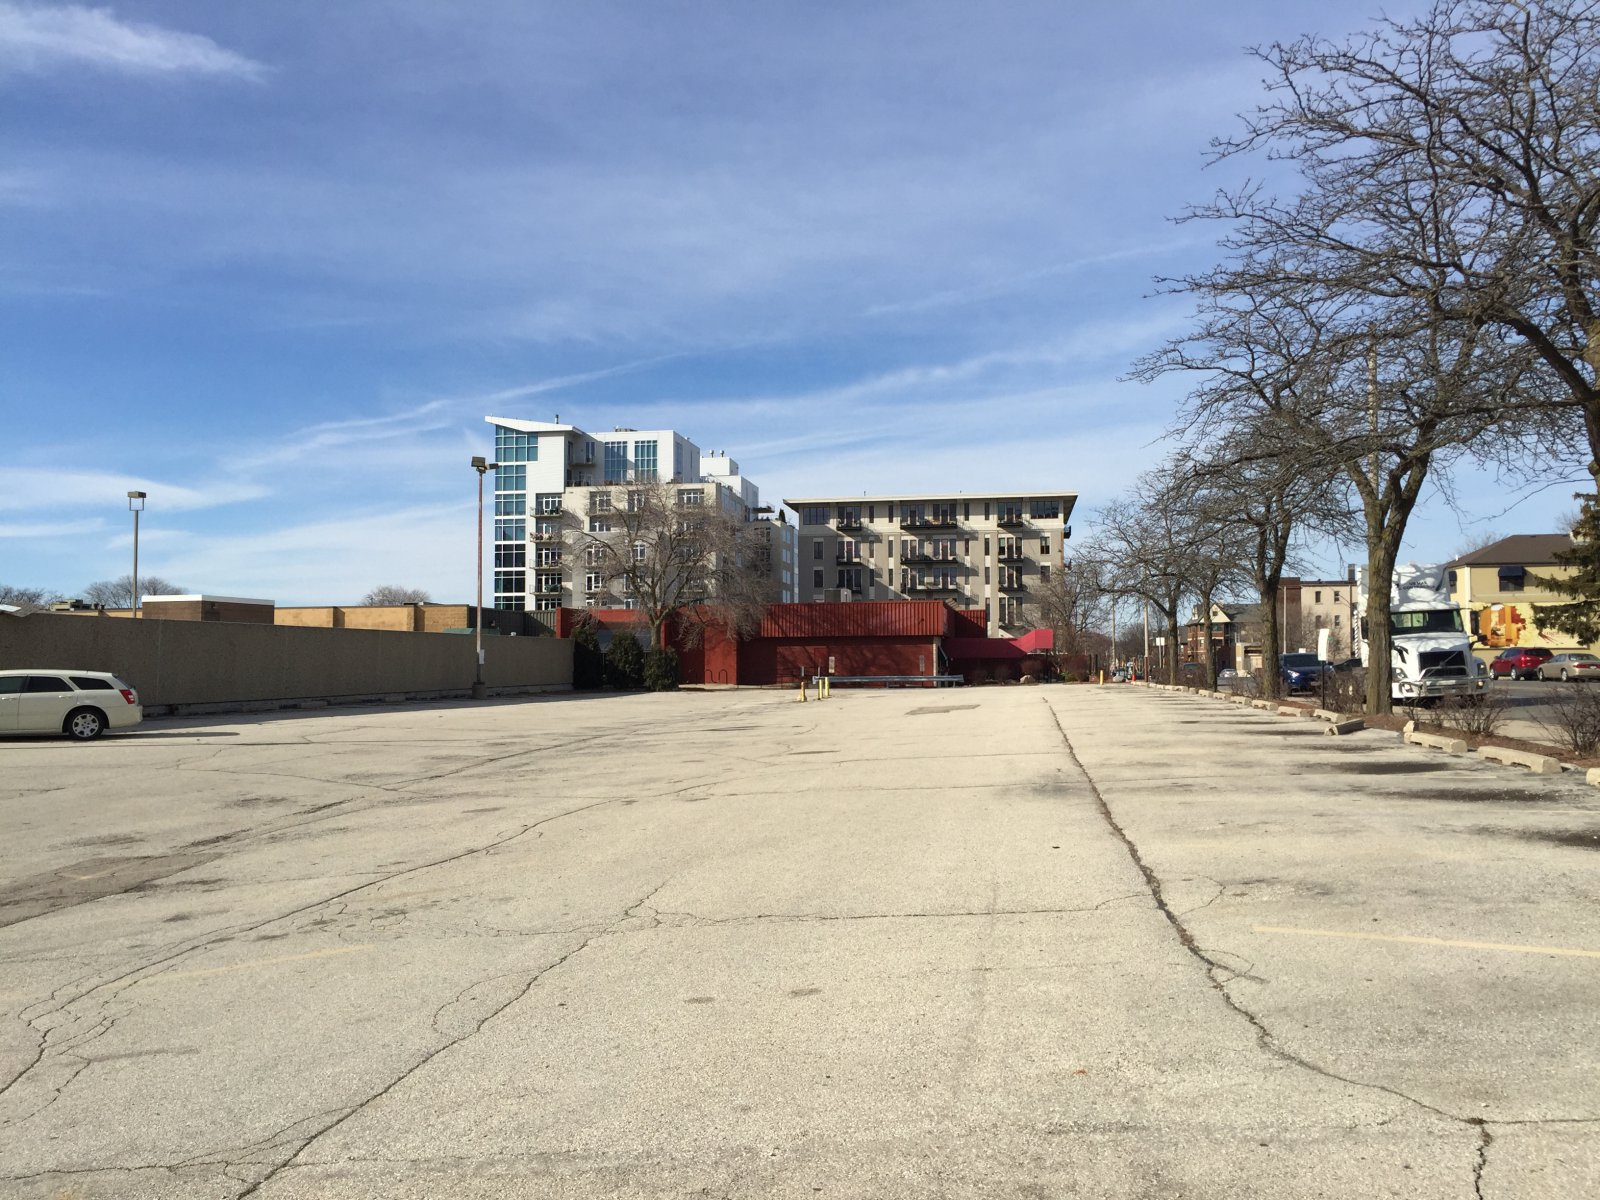 Redevelopment site, former Buca di Beppo and parking lot.